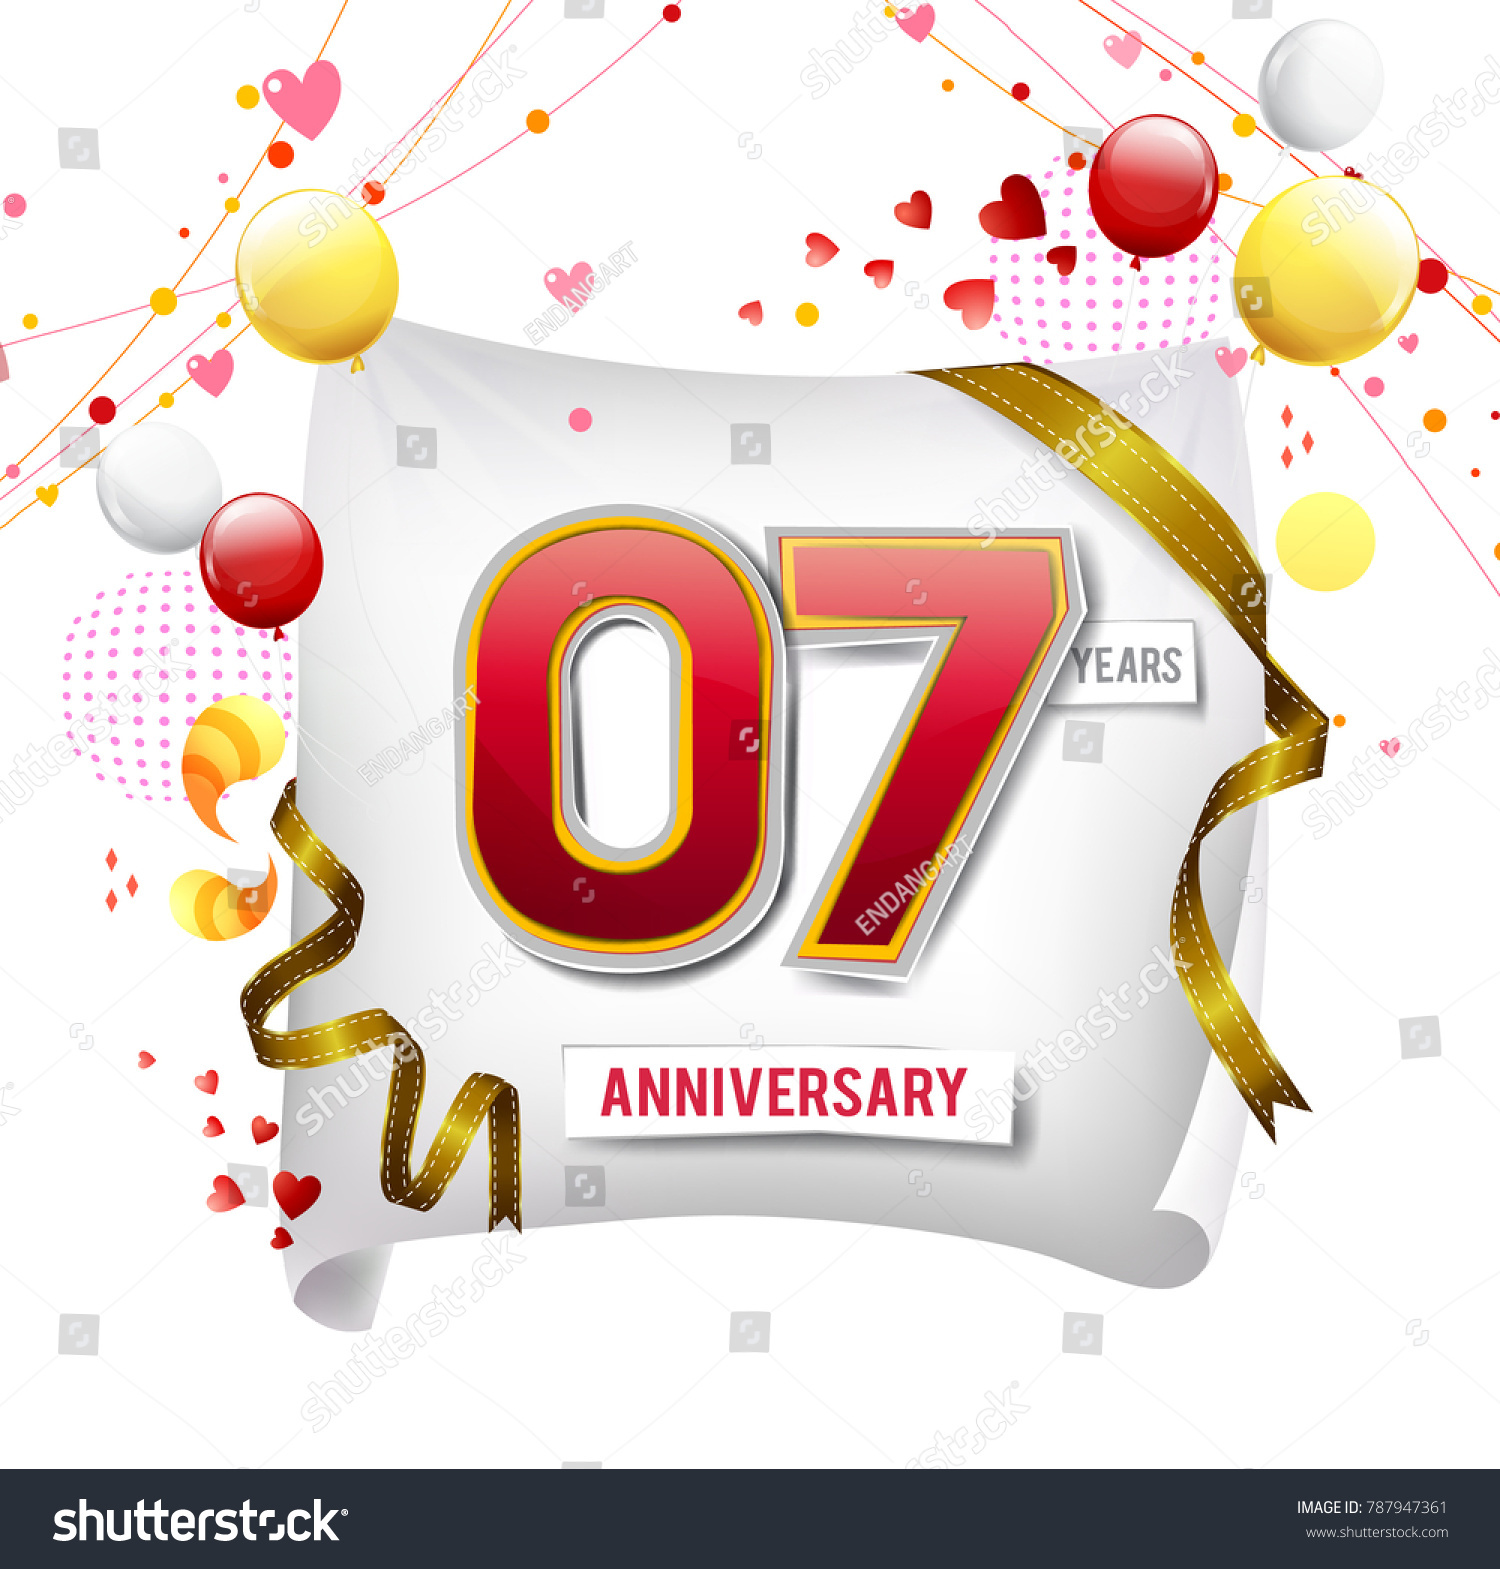 7 Years Anniversary Vector Illustration Banner Stock Vector (2018 ...